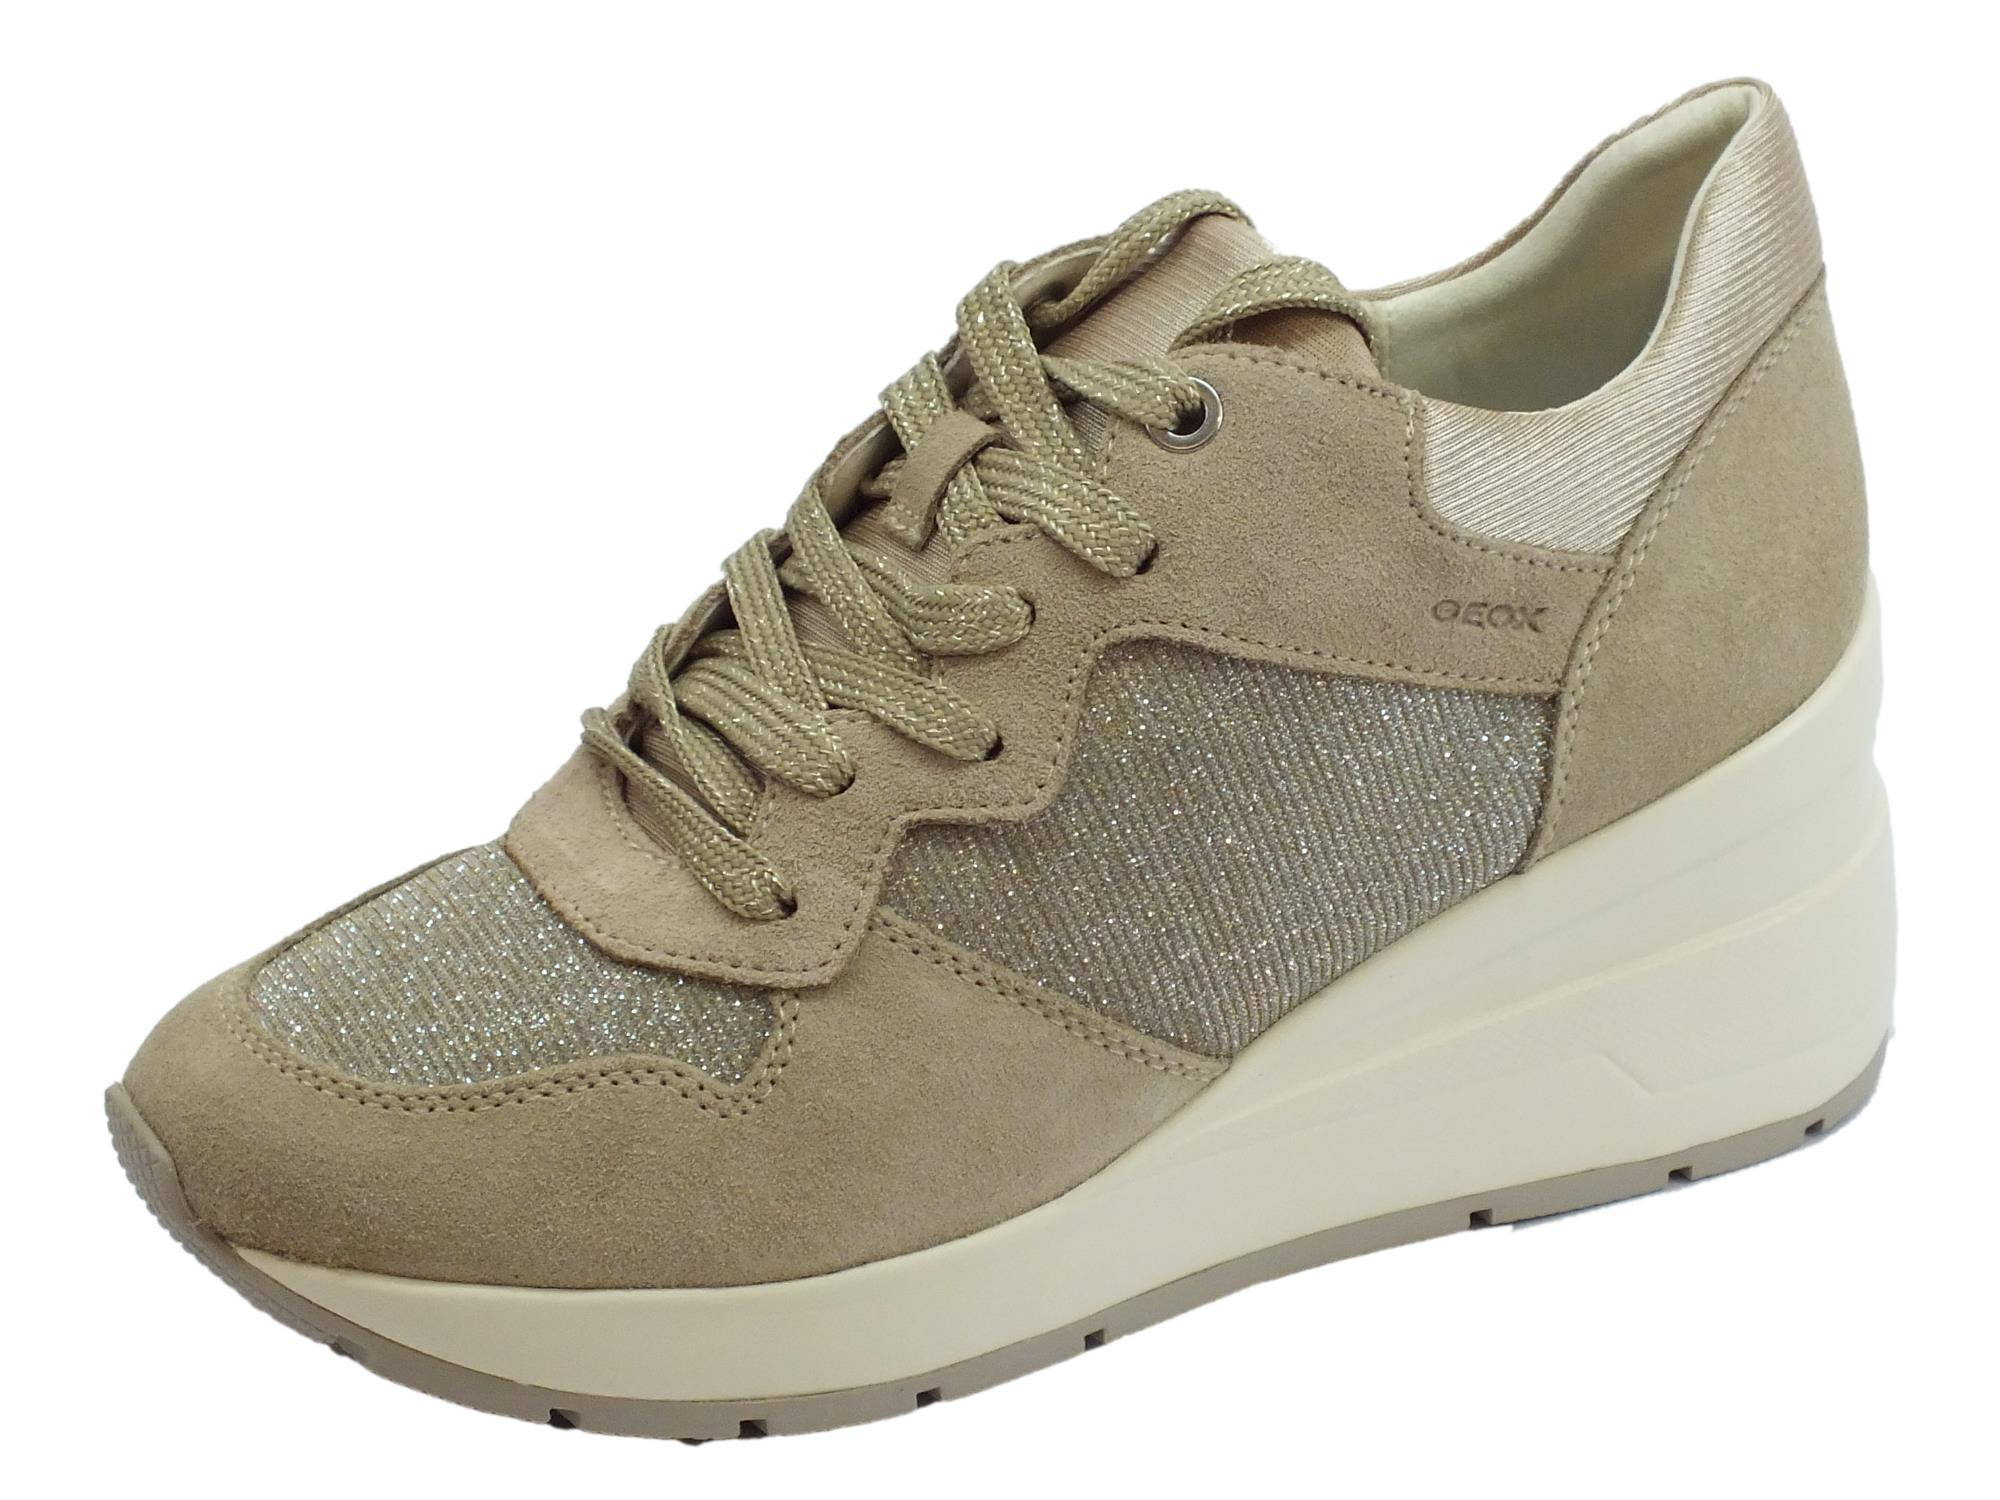 Sneakers Geox per donna in camoscio taupe e glitter argento zeppa alta -  mainstreetblytheville.org 8eeb3a235d9